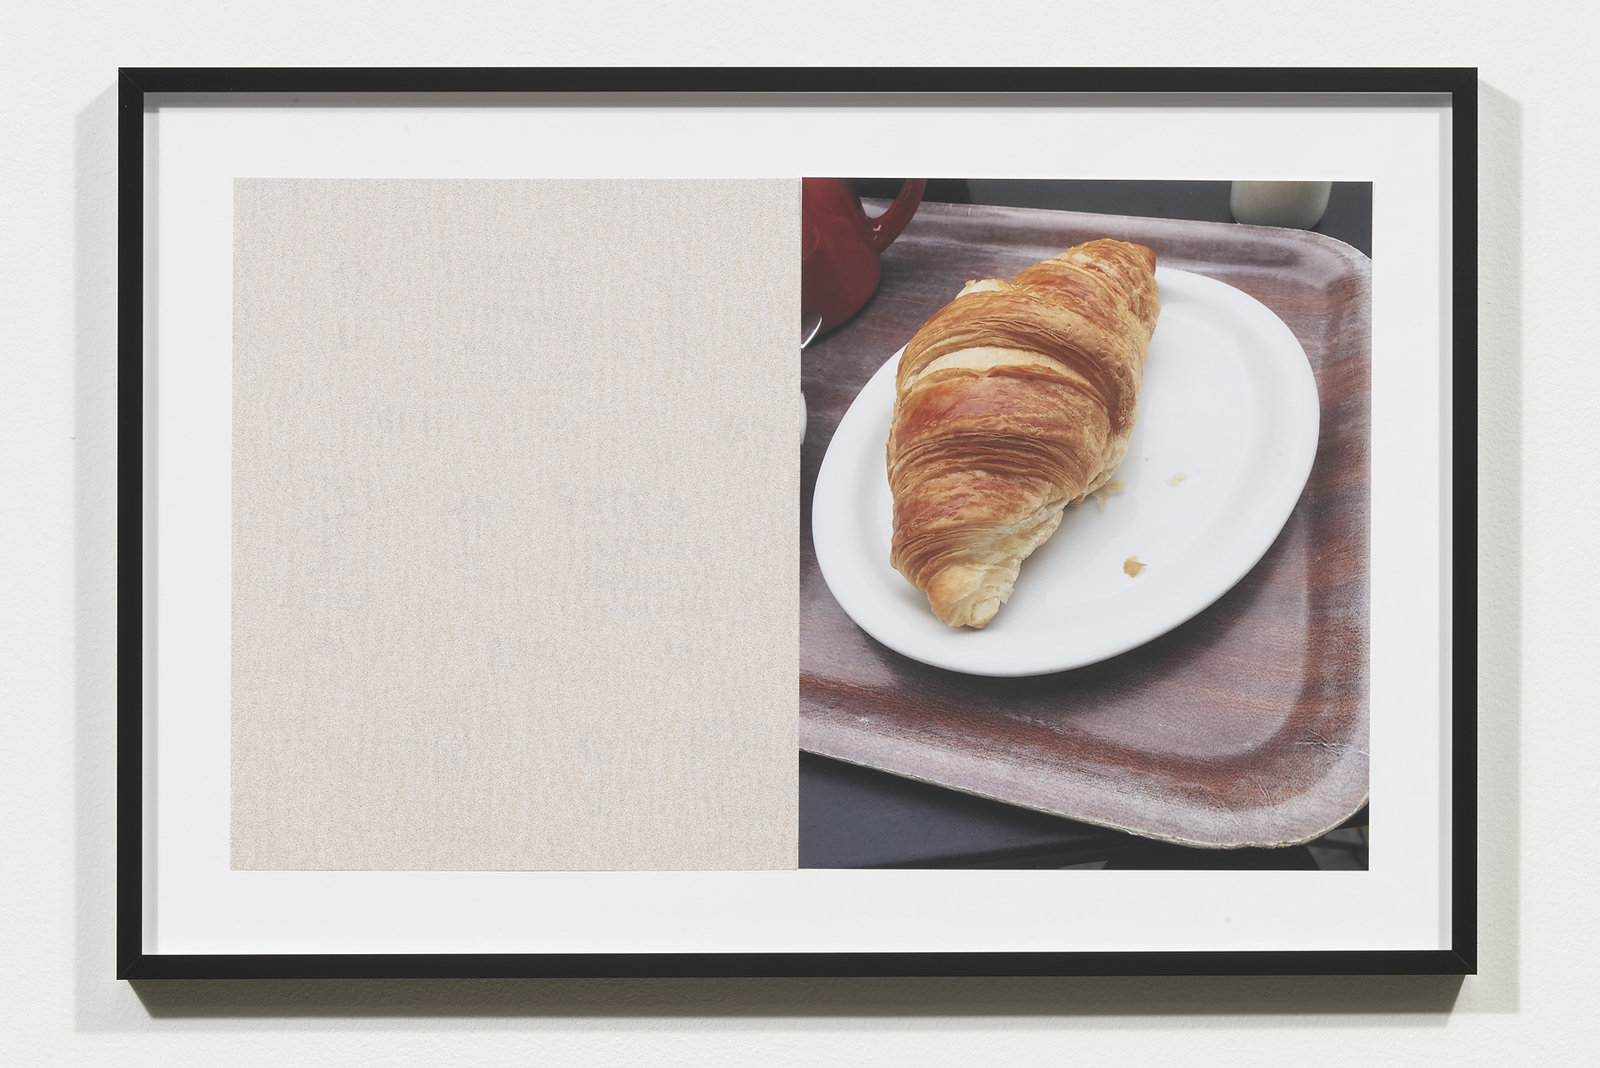 Wermers_Croissants & Architecture #26, 2016_C-print, sandpaper sheet, framed_14 3_8 x 21 1_2 in_NW00067PG